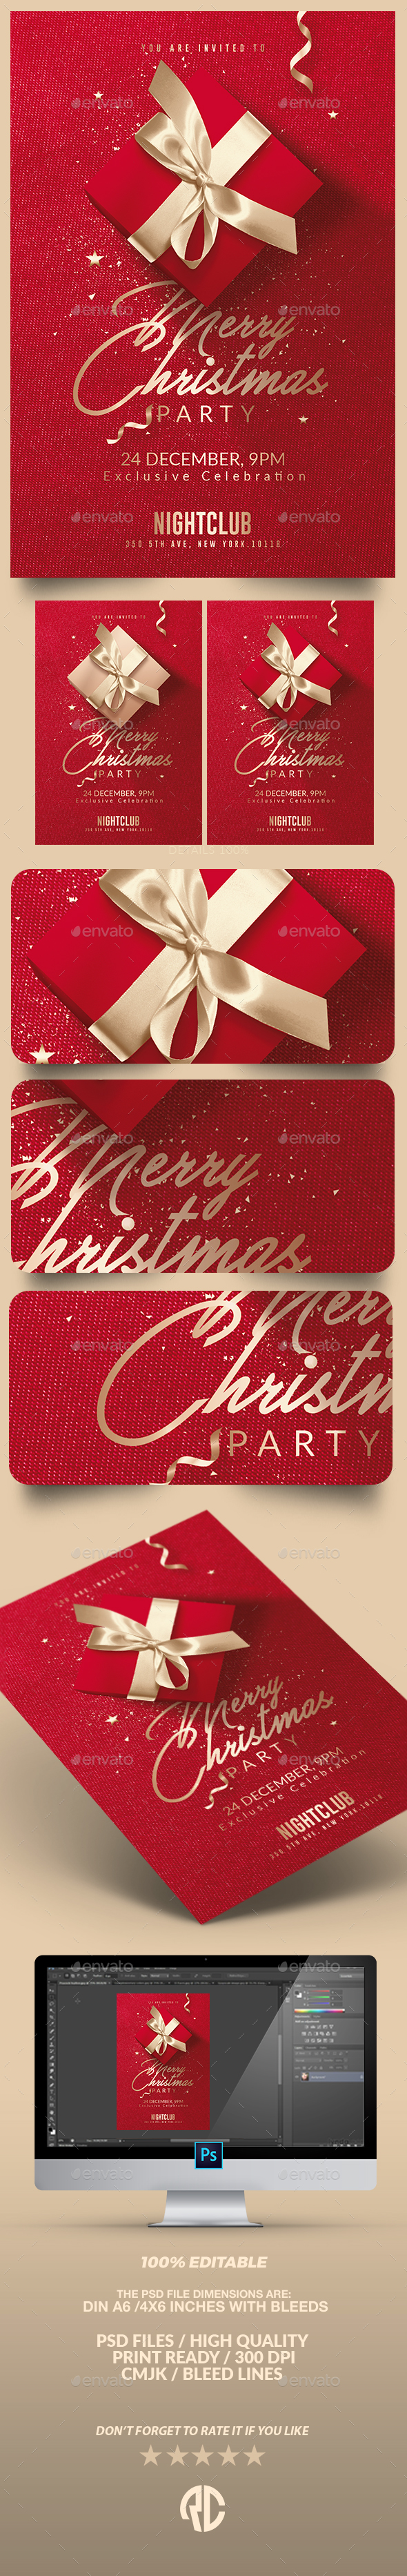 Red Christmas Party | Invitation Flyer Template